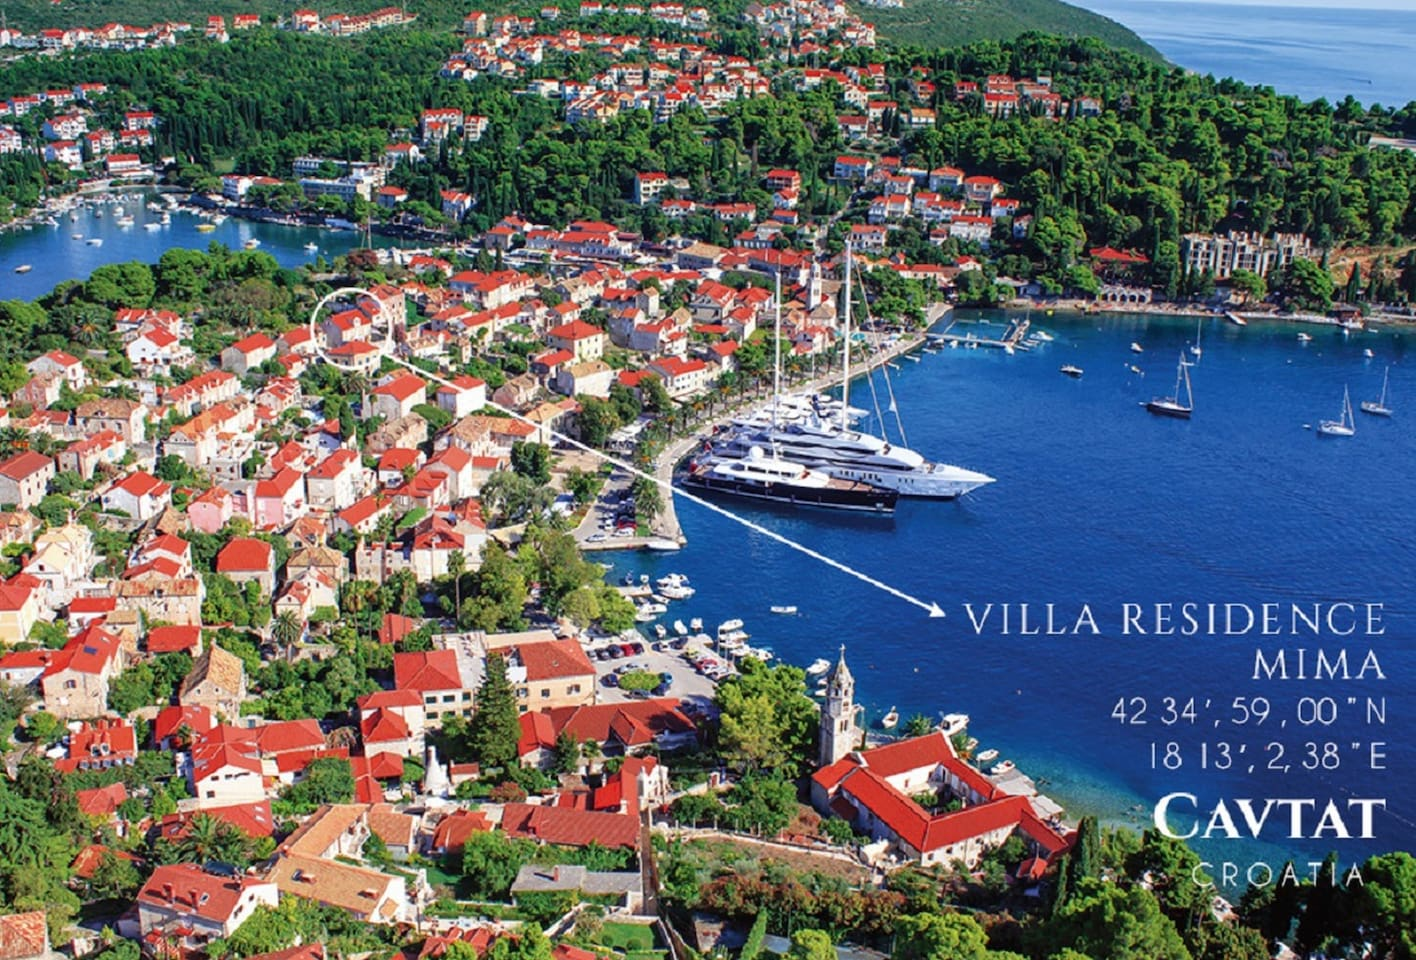 VILLA RESIDENCE MIMA-Cavtat old city pool villa near Dubrovnik Location: Central position in the medieval old City of Cavtat with a breathless view over the bay of Cavtat, Yachts, restaurants and all. Position: 42' 34,59.00 N, 18 13' 2.38 E Googl map